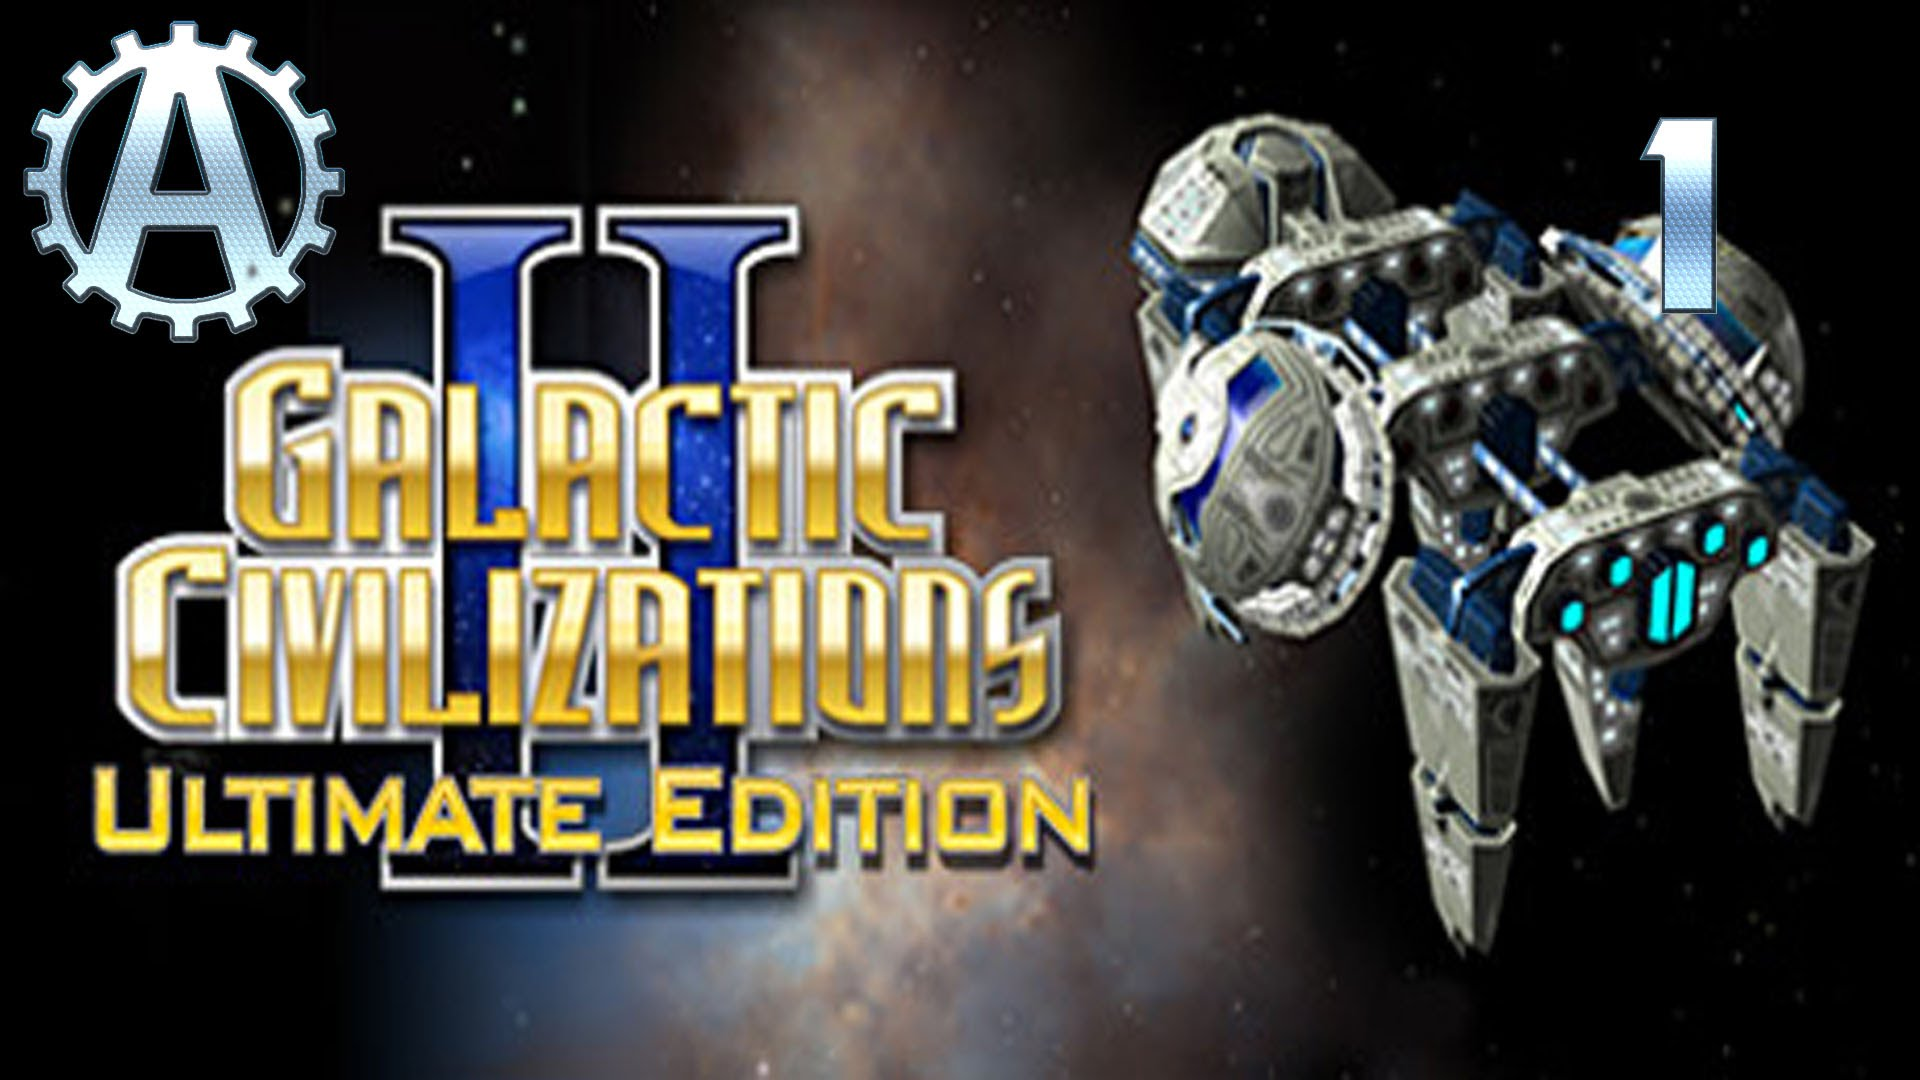 HumbleBundle is giving away Galactic Civilizations II: Ultimate Edition for FREE